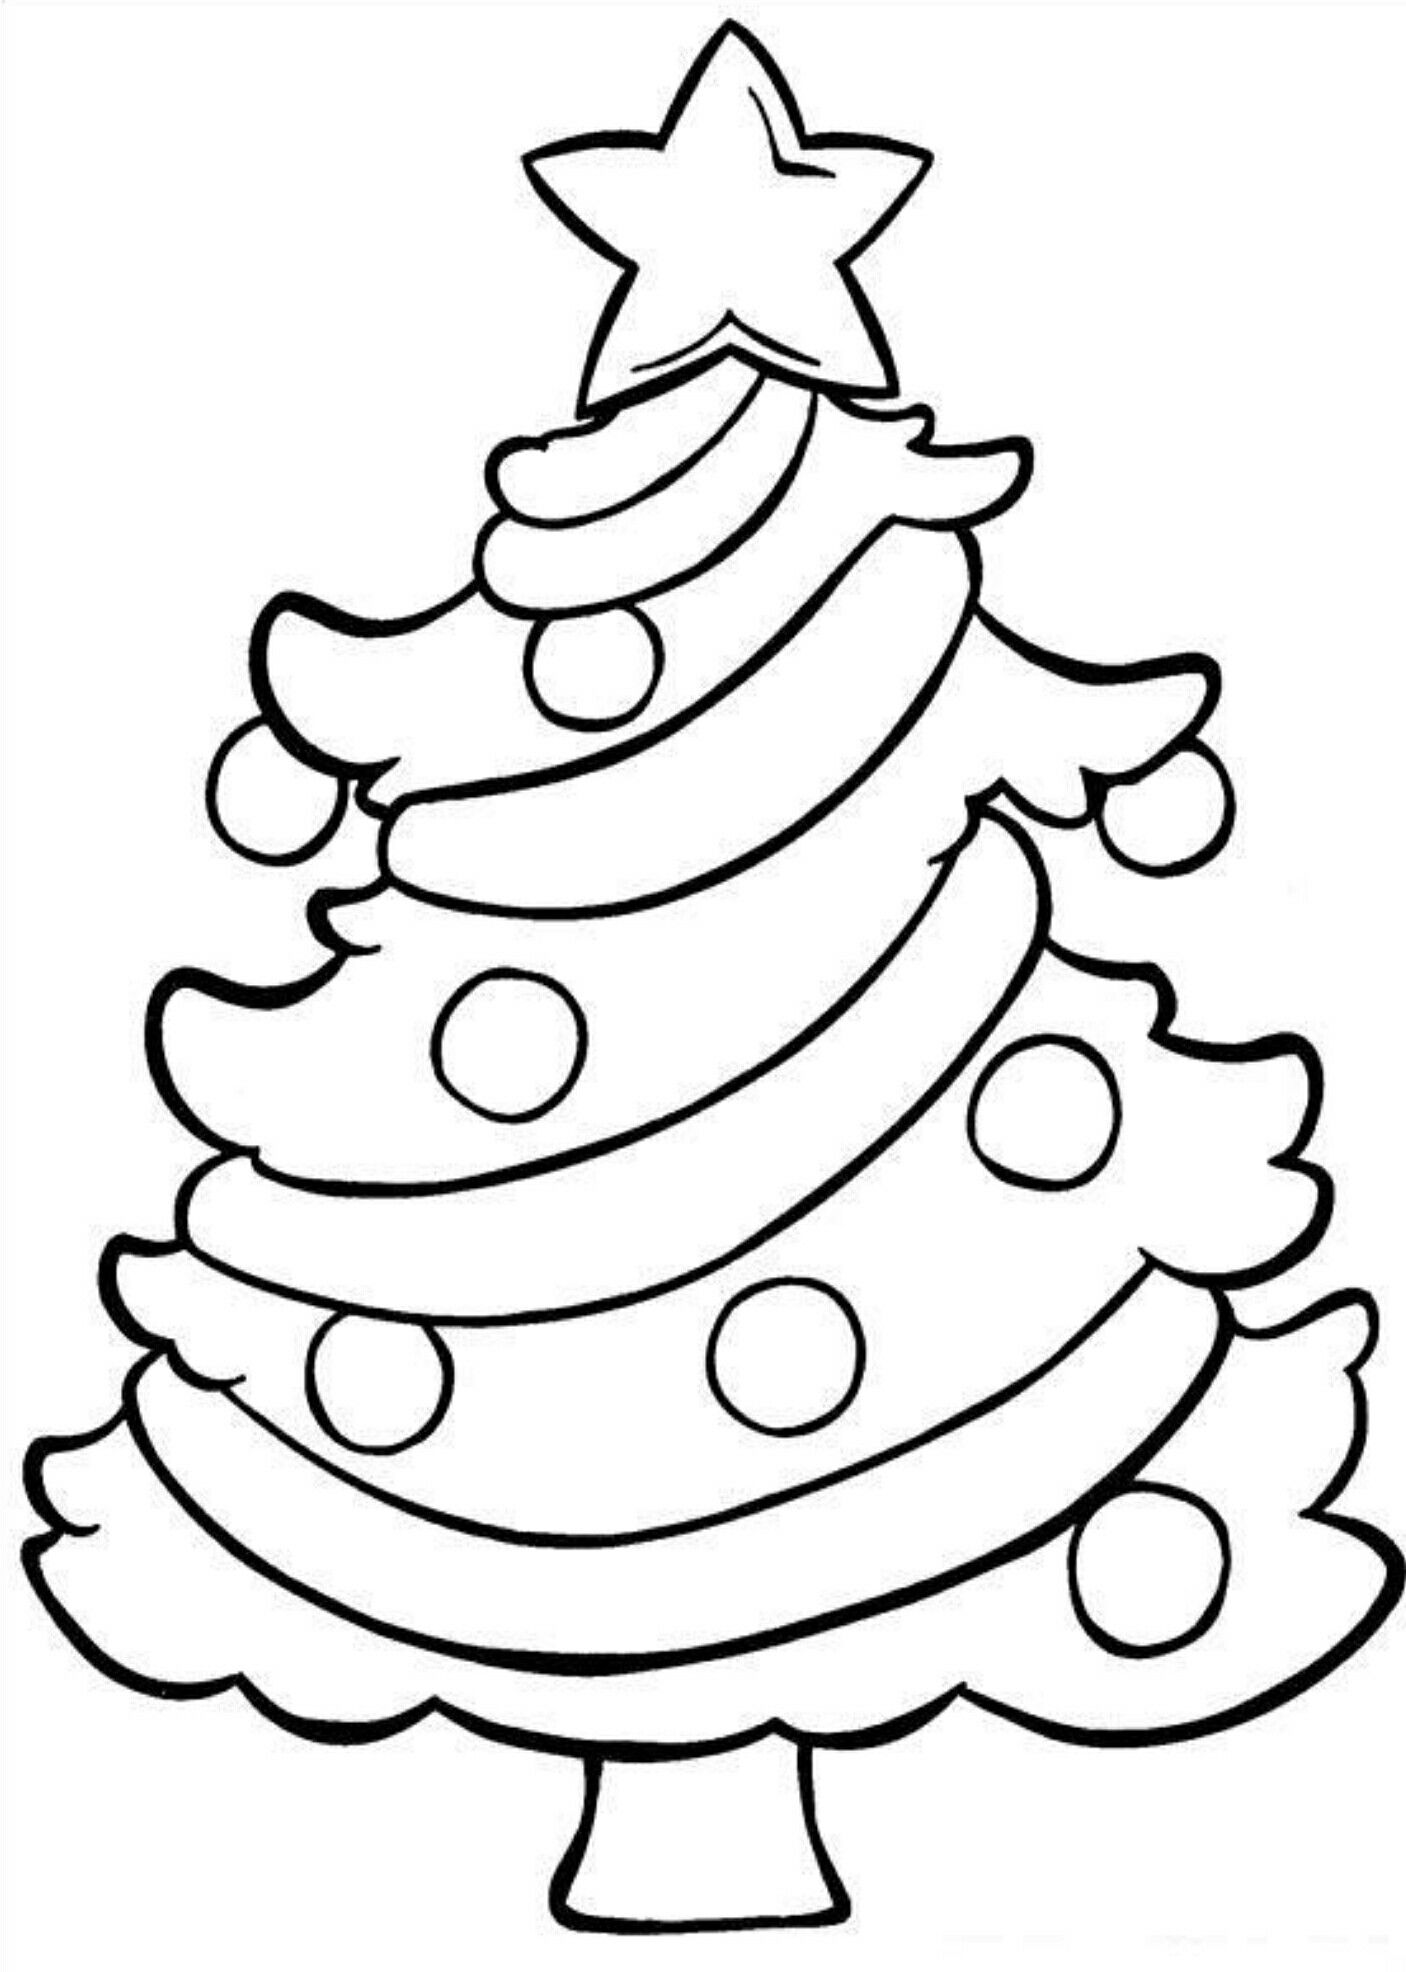 Pin by Esther on PreK stuff Free christmas coloring